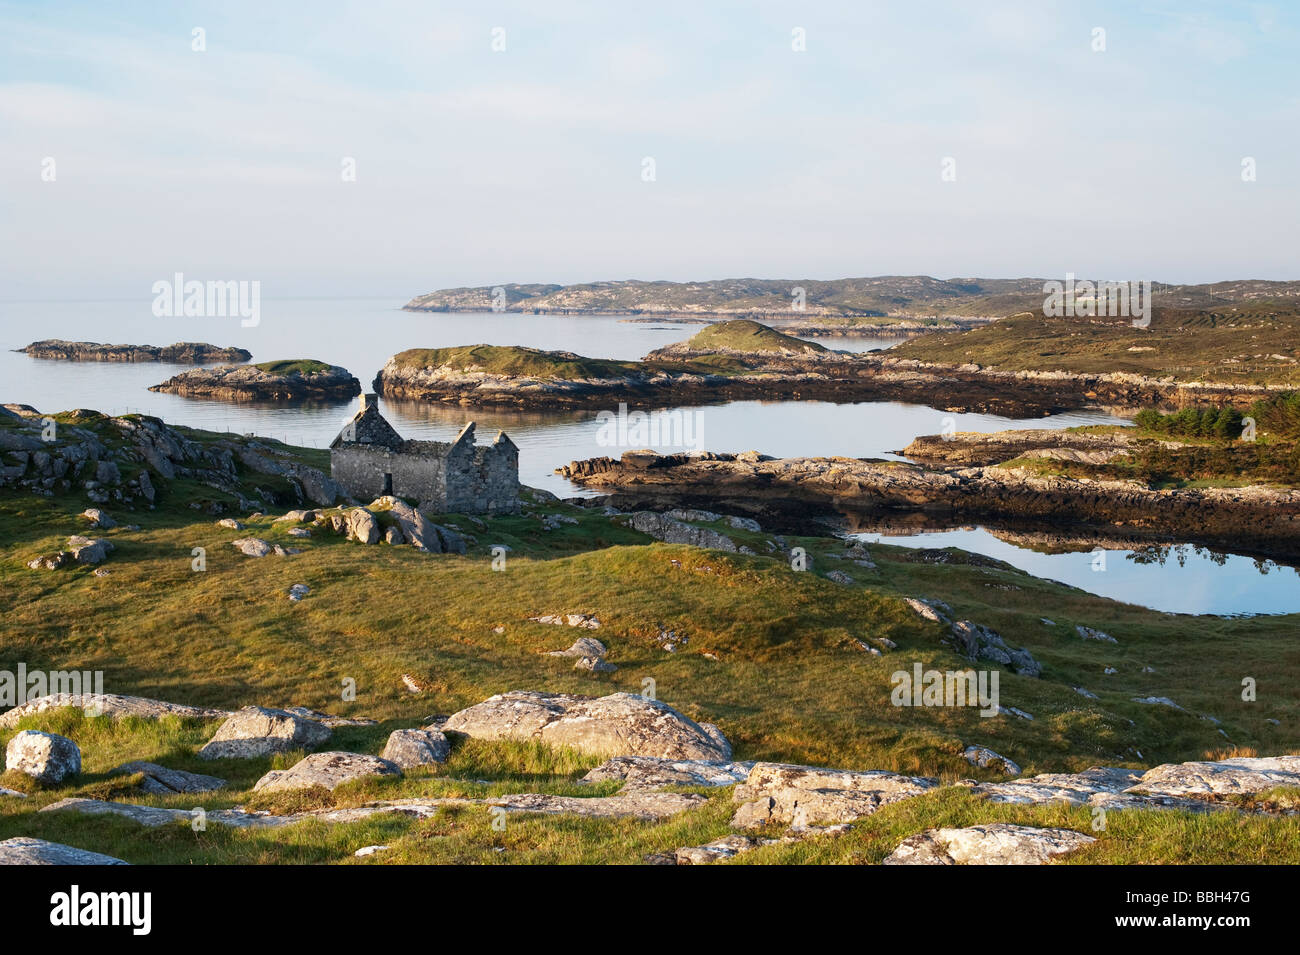 Derelict barn on South Harris coastline , Outer Hebrides, Scotland - Stock Image